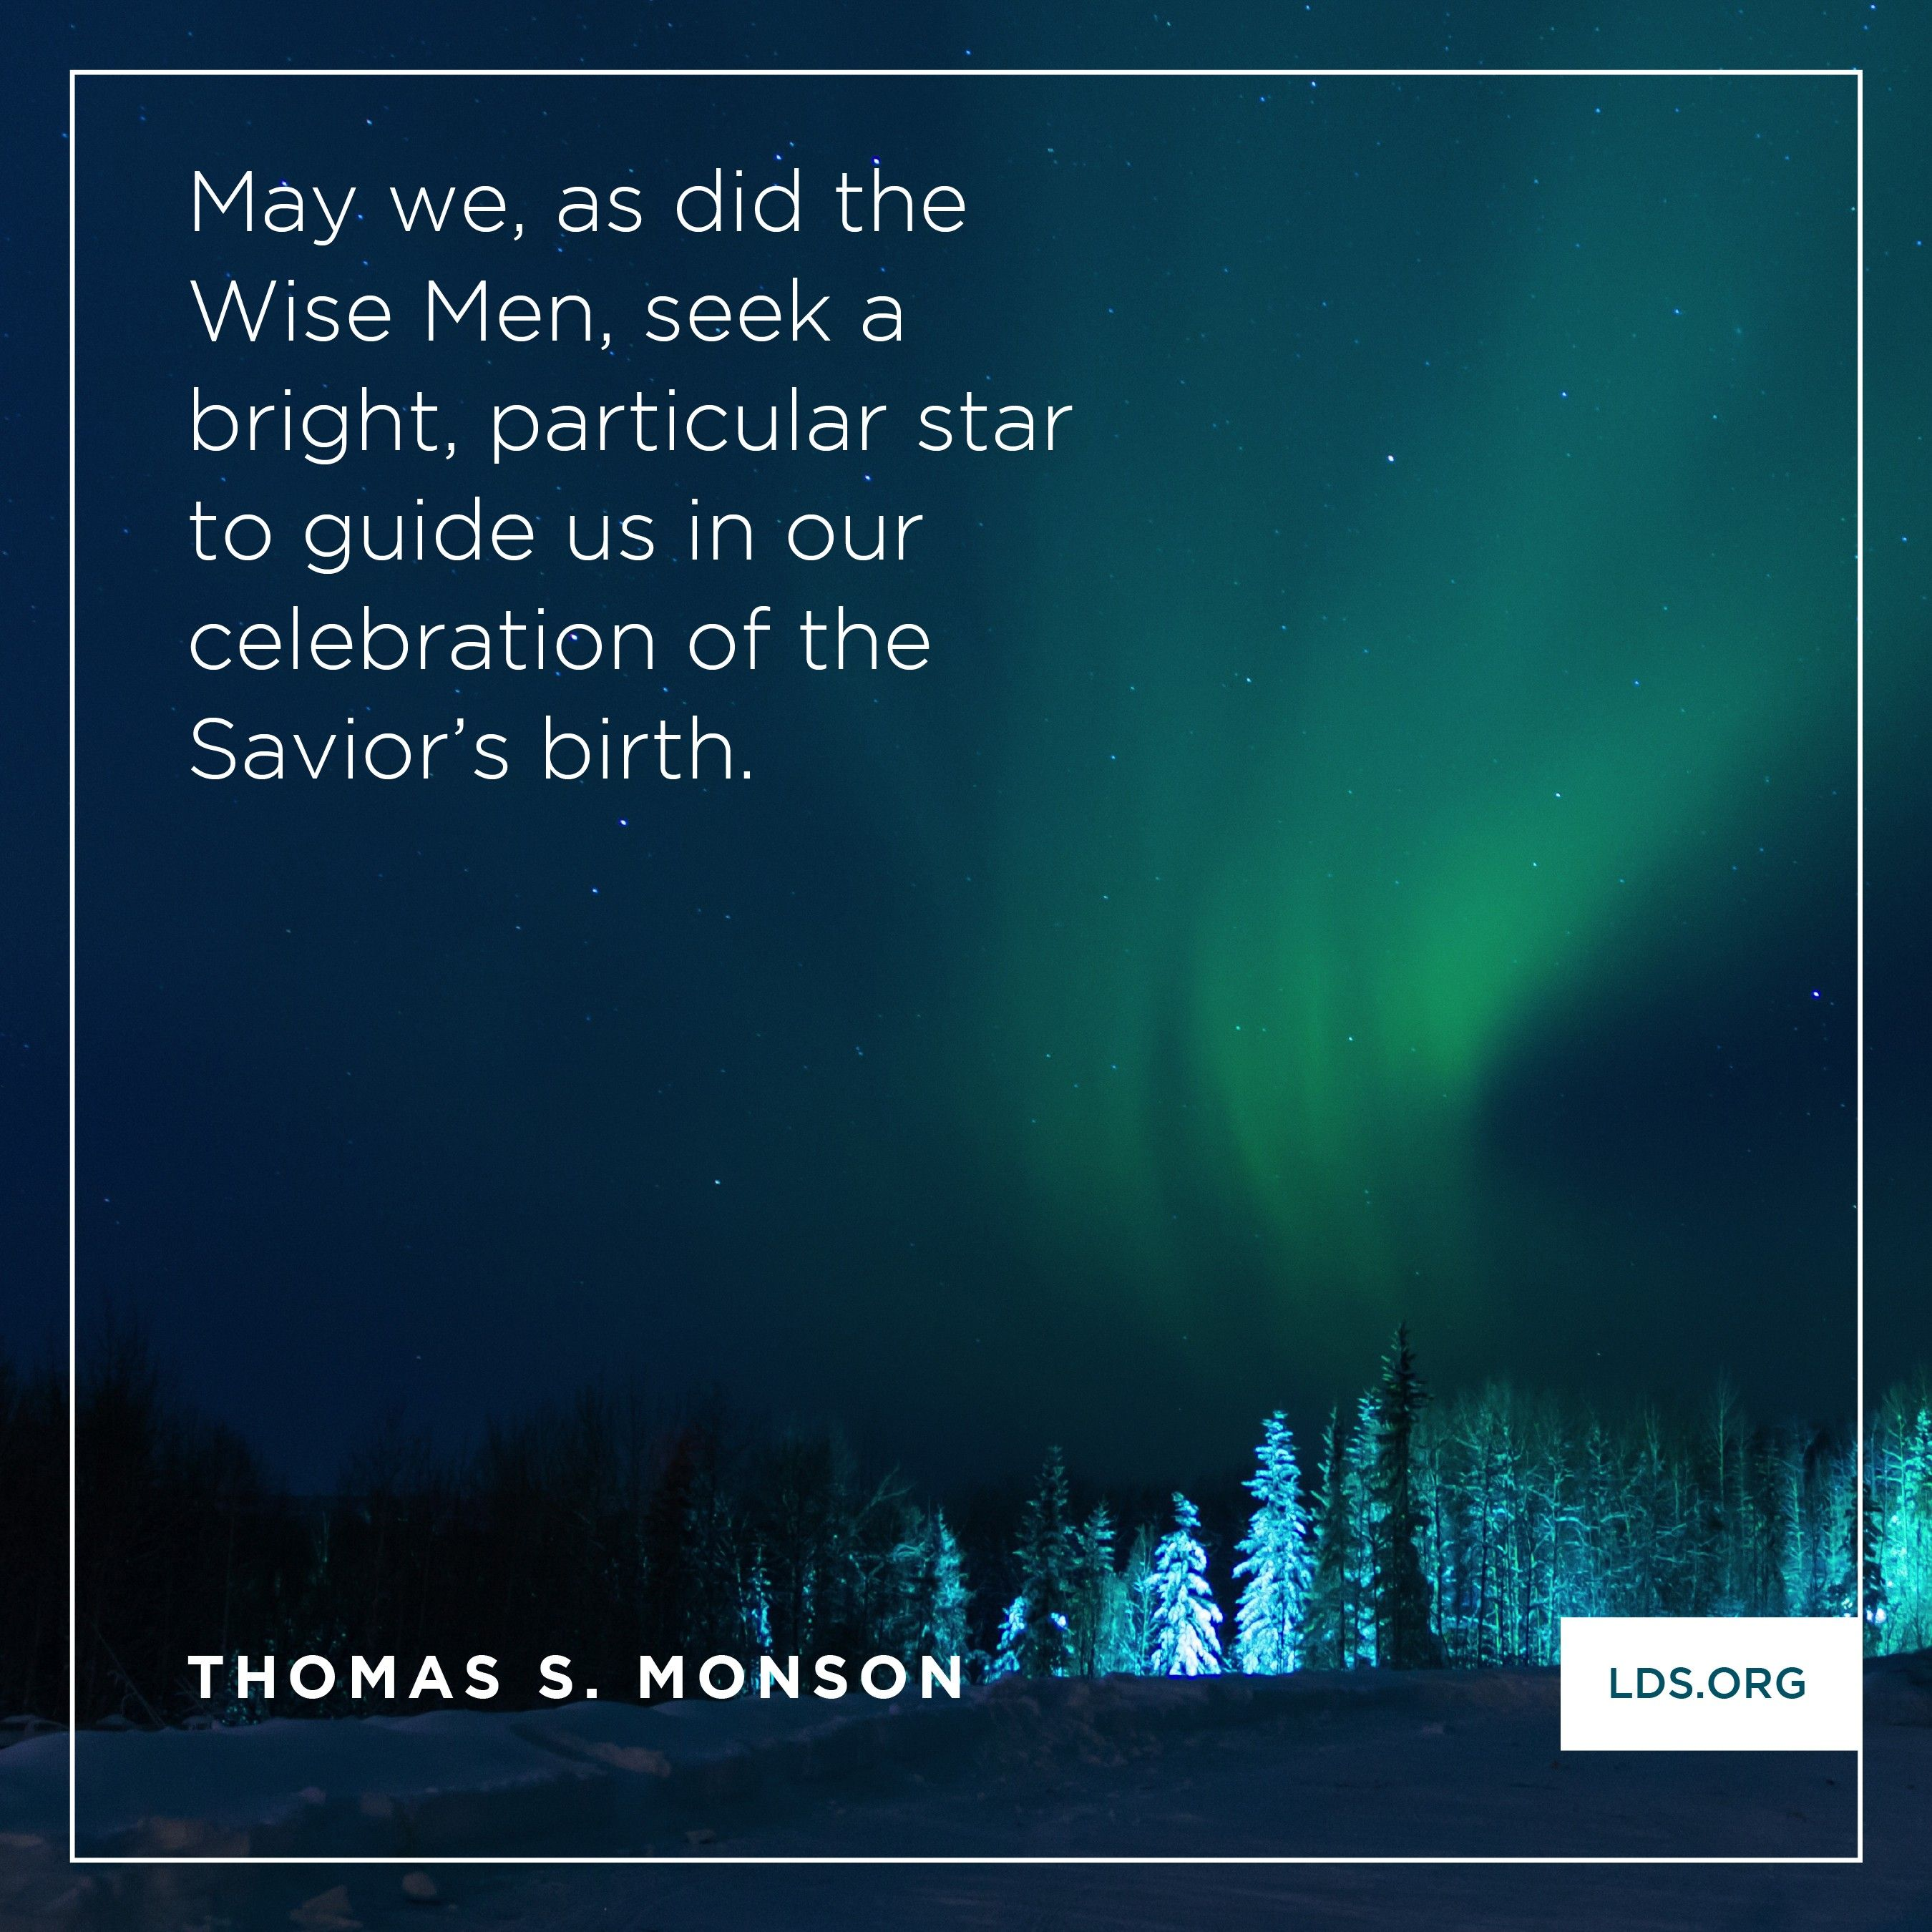 """""""May we, as did the Wise Men, seek a bright, particular star to guide us in our celebration of the Savior's birth.""""—President Thomas S. Monson, """"The Real Joy of Christmas"""""""